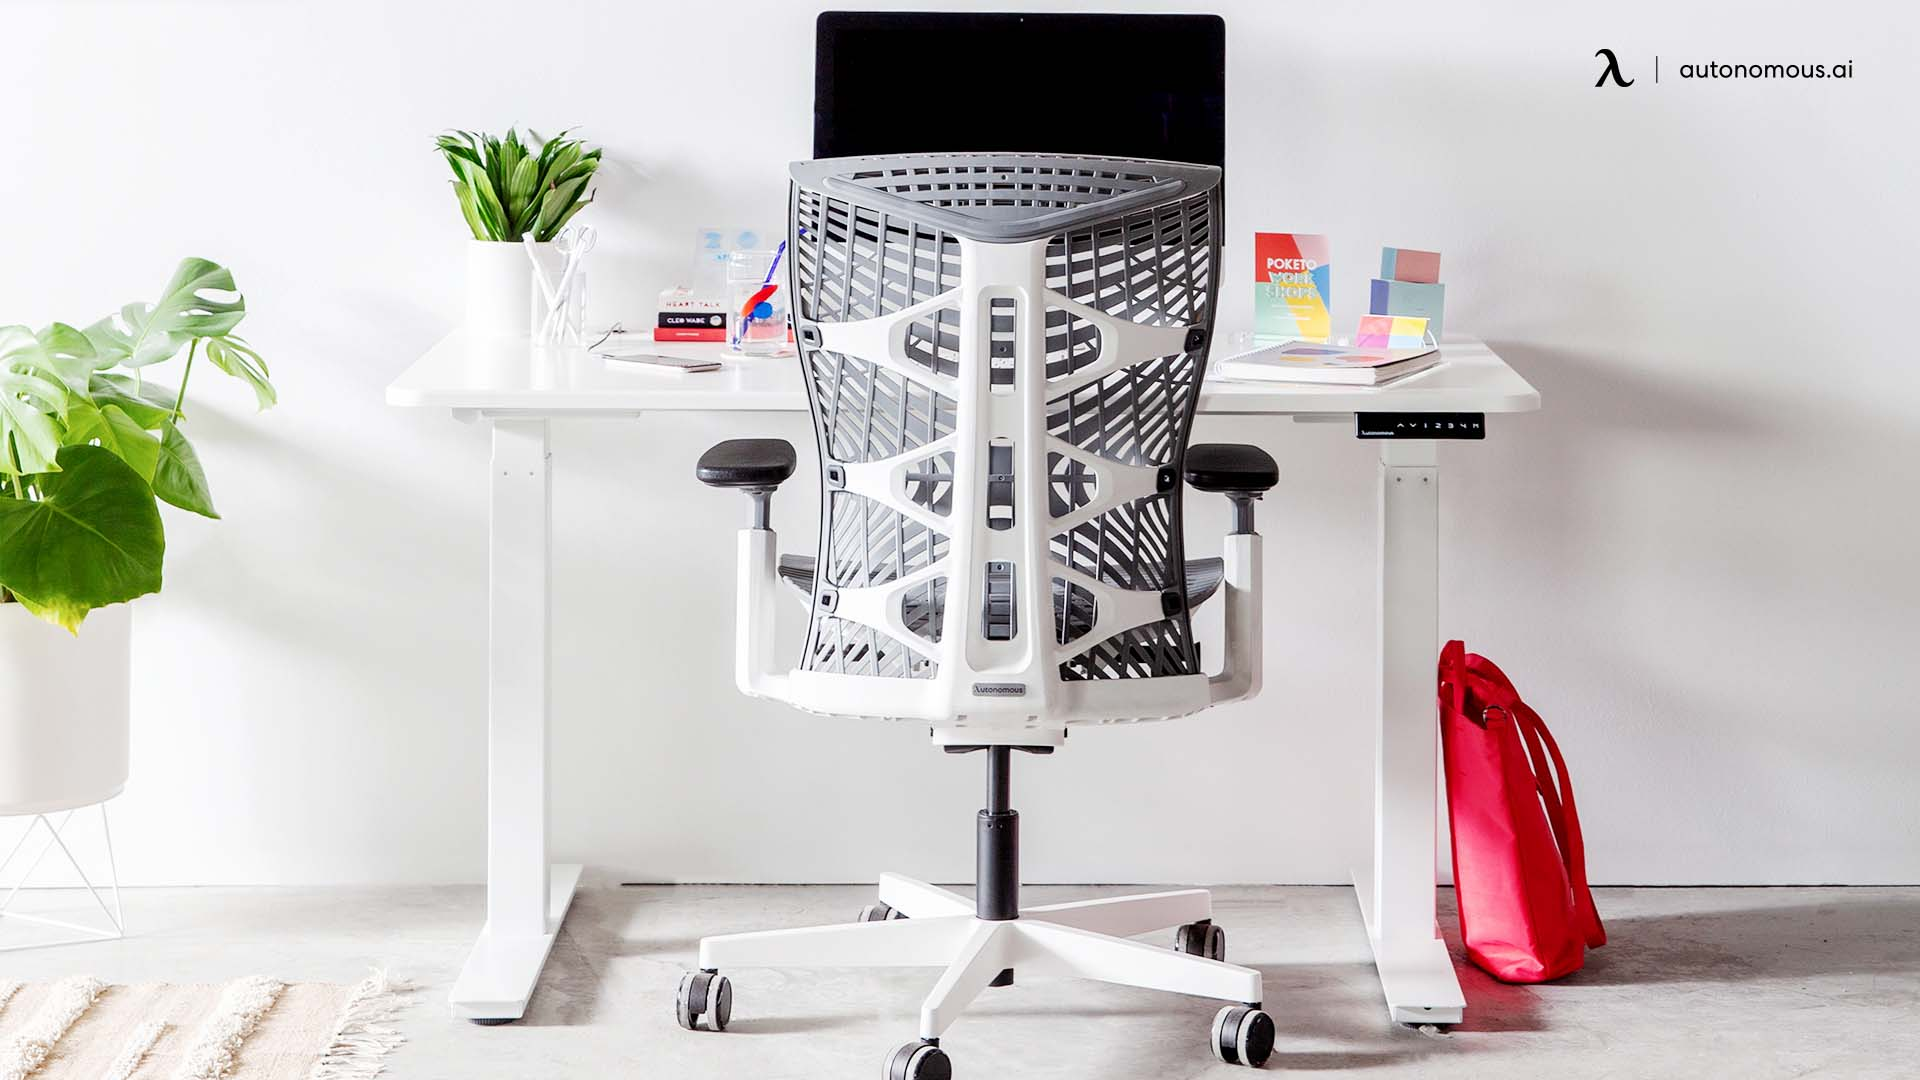 Ergonomic Chair as home office furniture